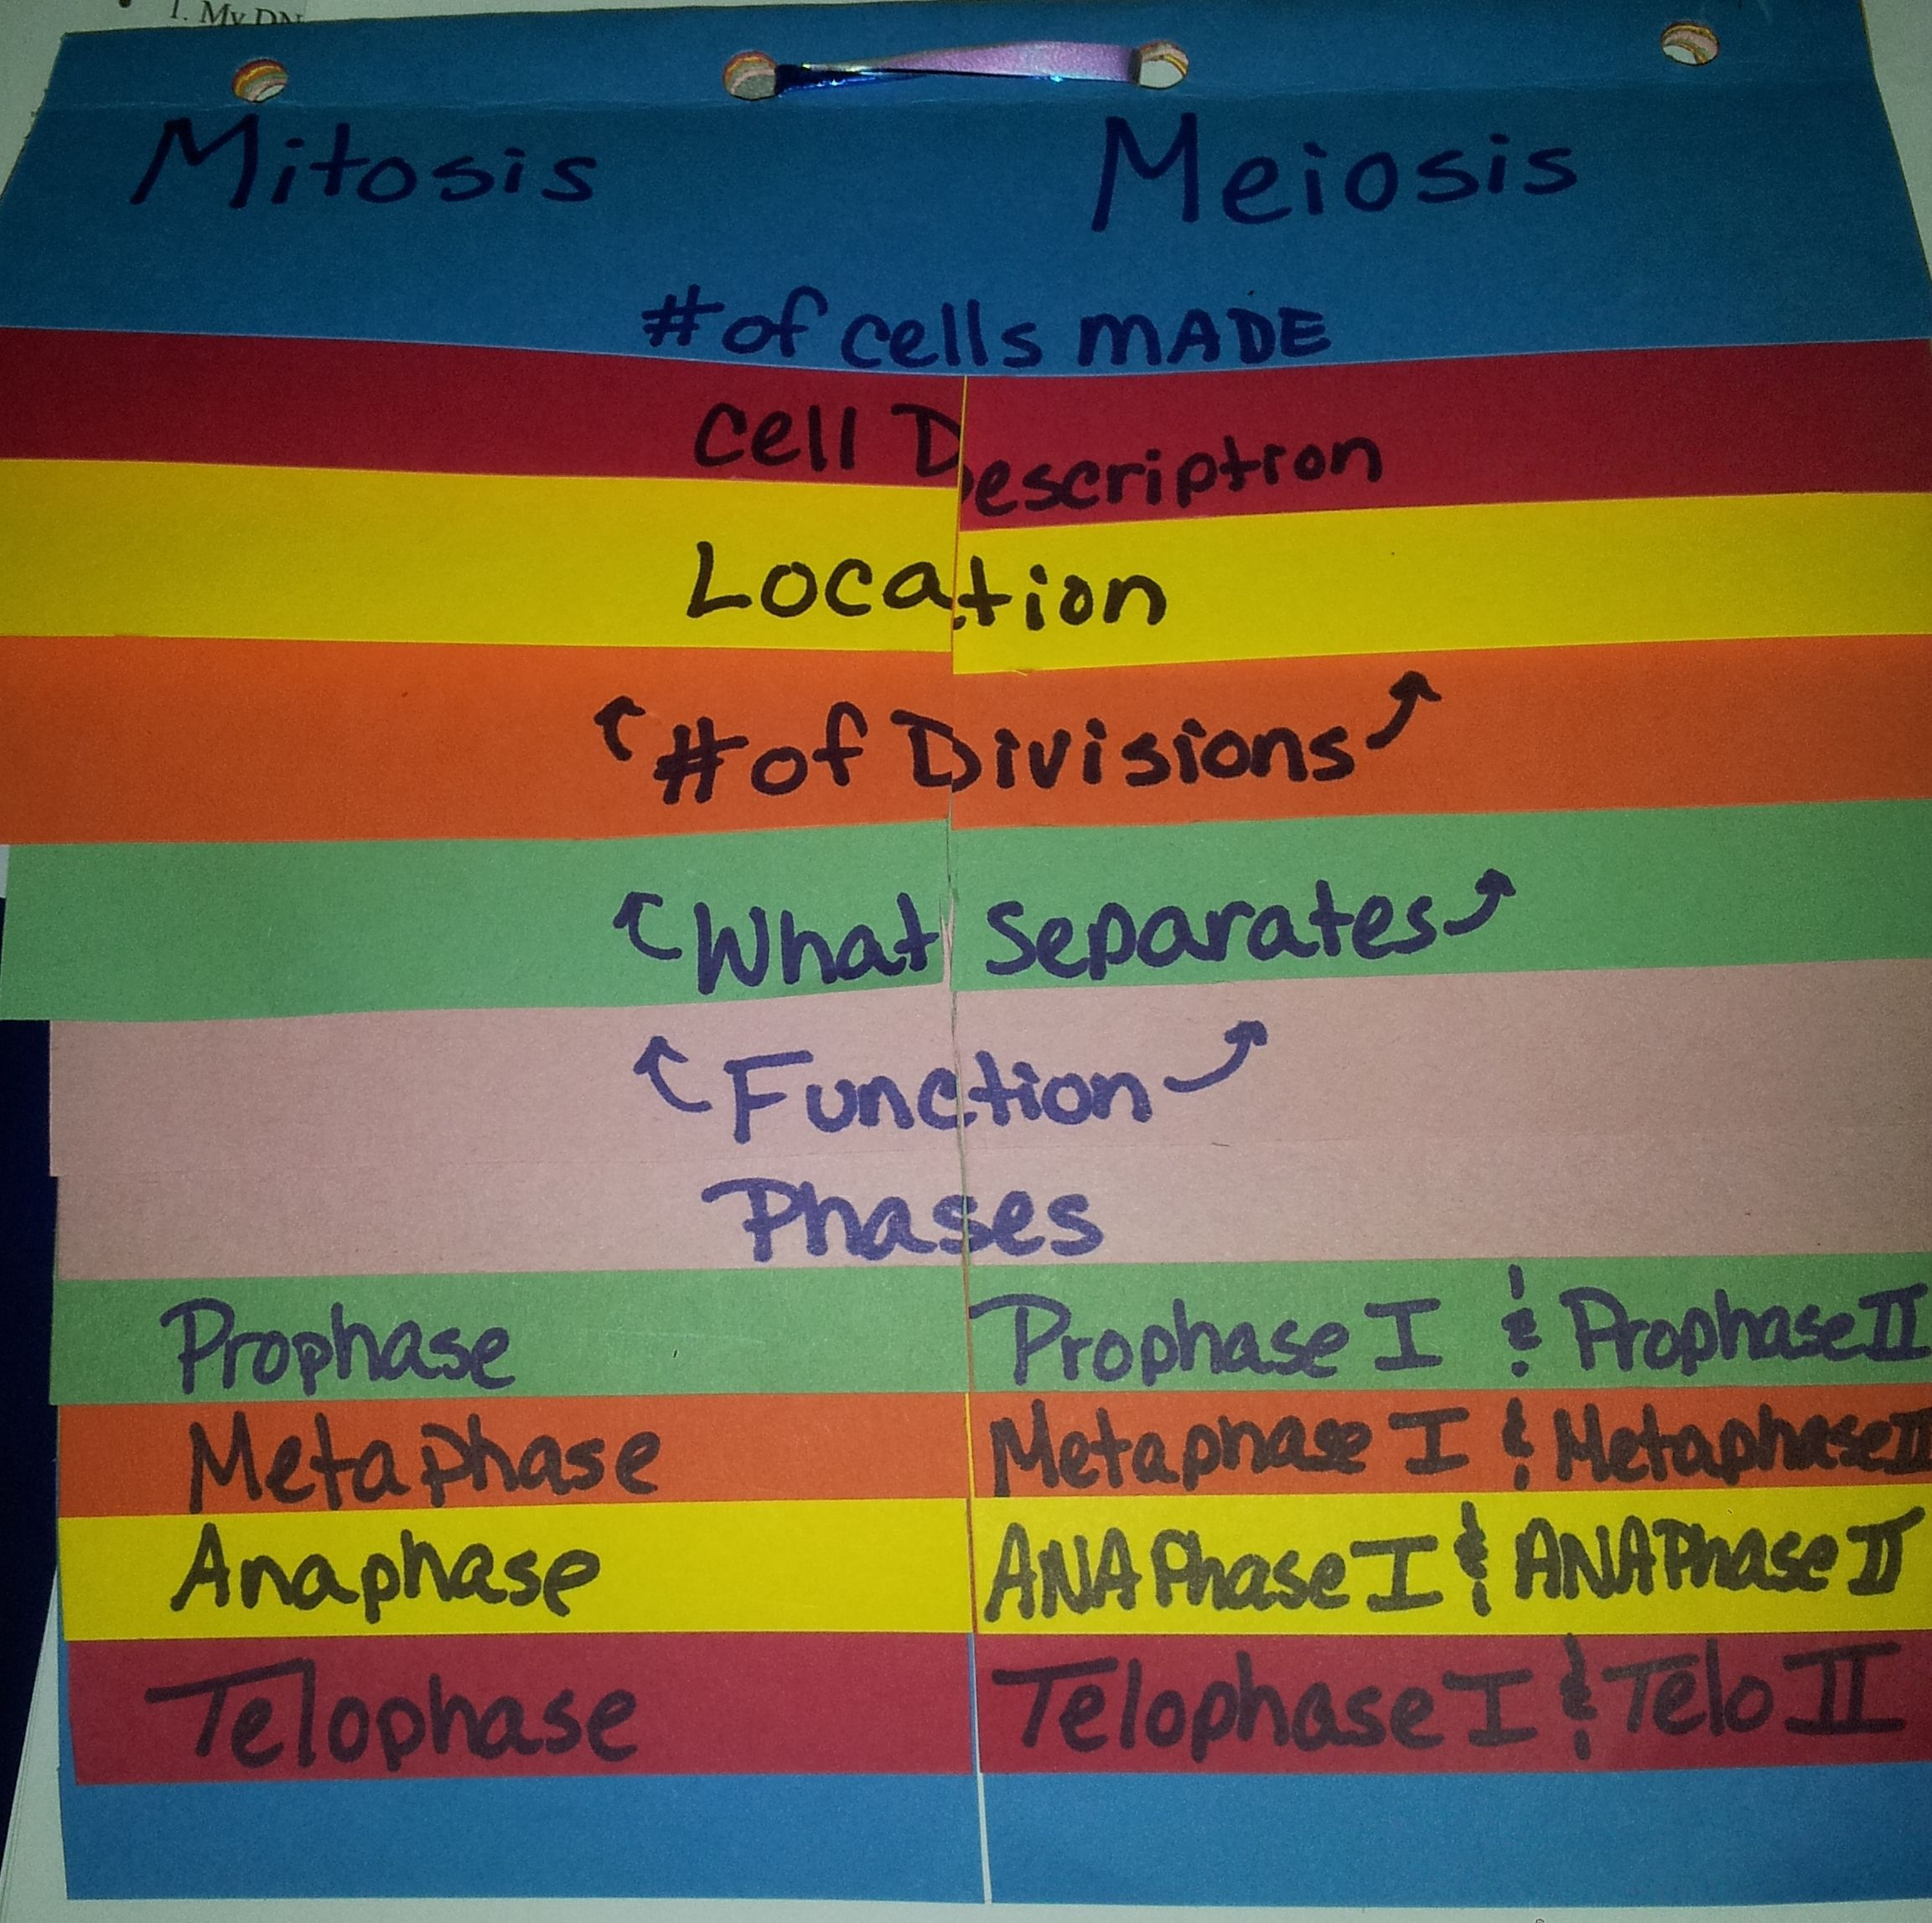 Mitotis And Meiosis Foldable No Description But I Think I Could Figure This Out